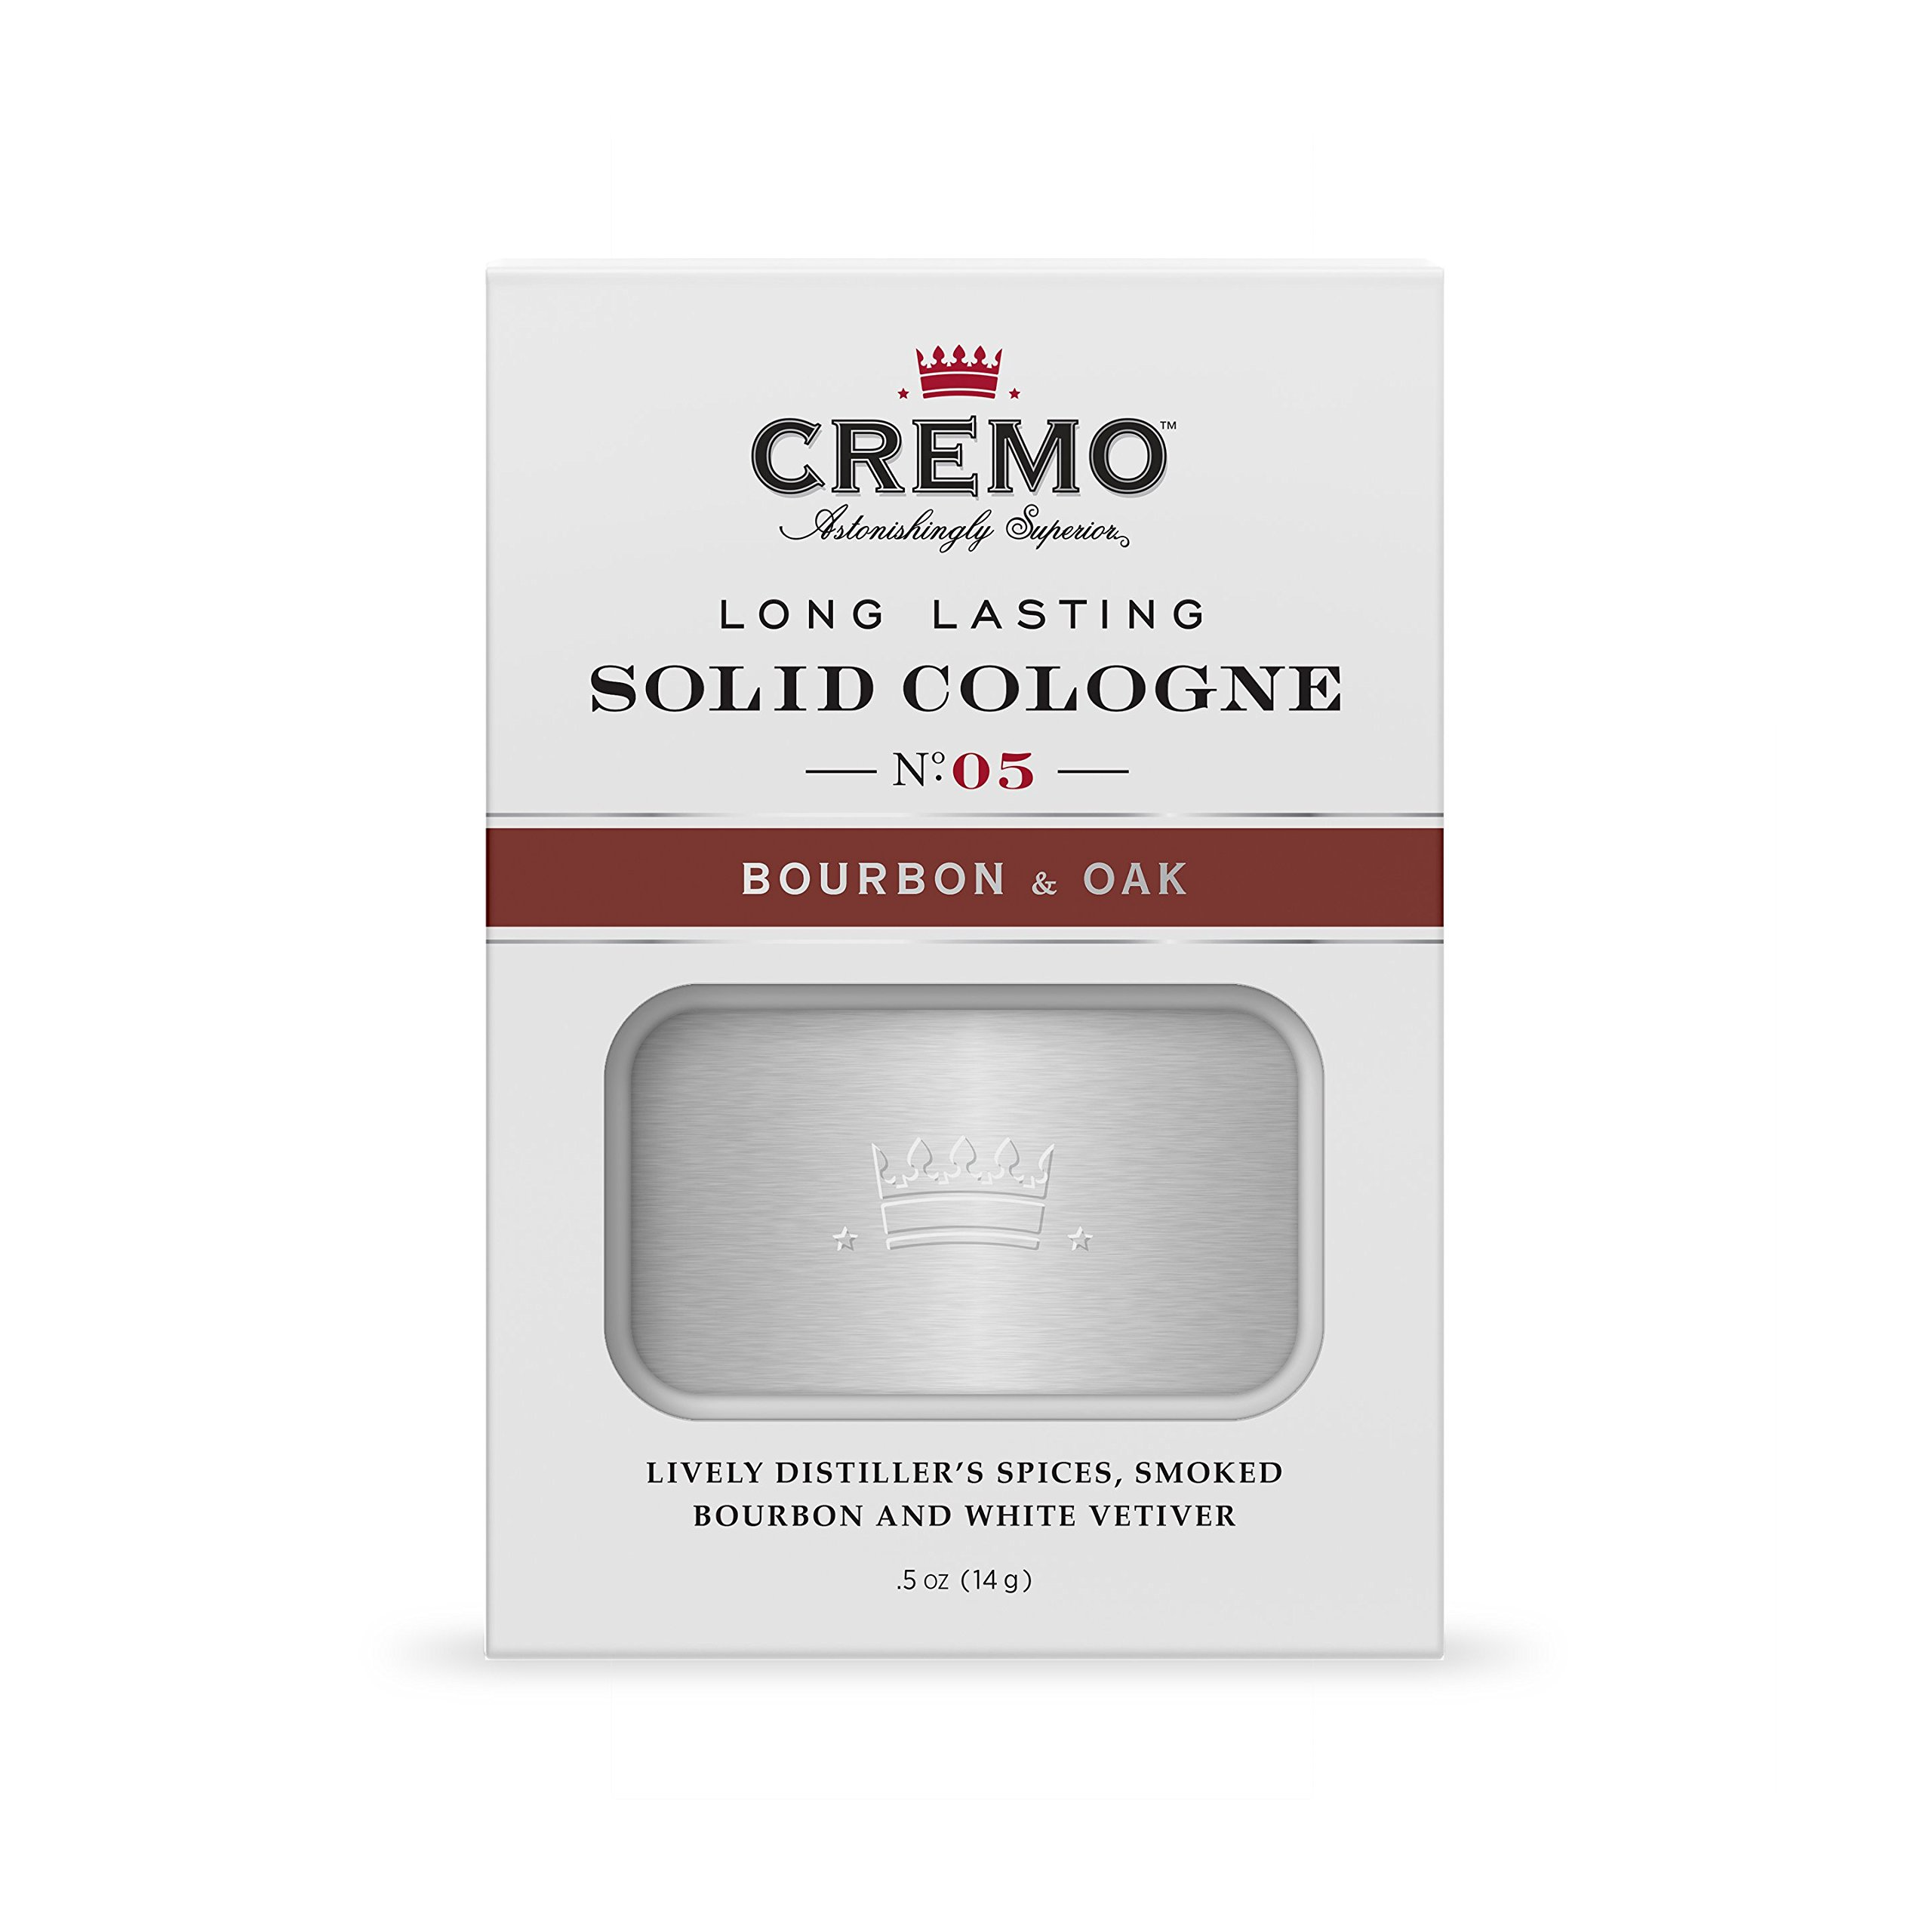 Cremo Solid Cologne That Fits In Your Pocket So You Can Apply Discreetly - Bourbon & Oak.45 Ounce Tin by Cremo